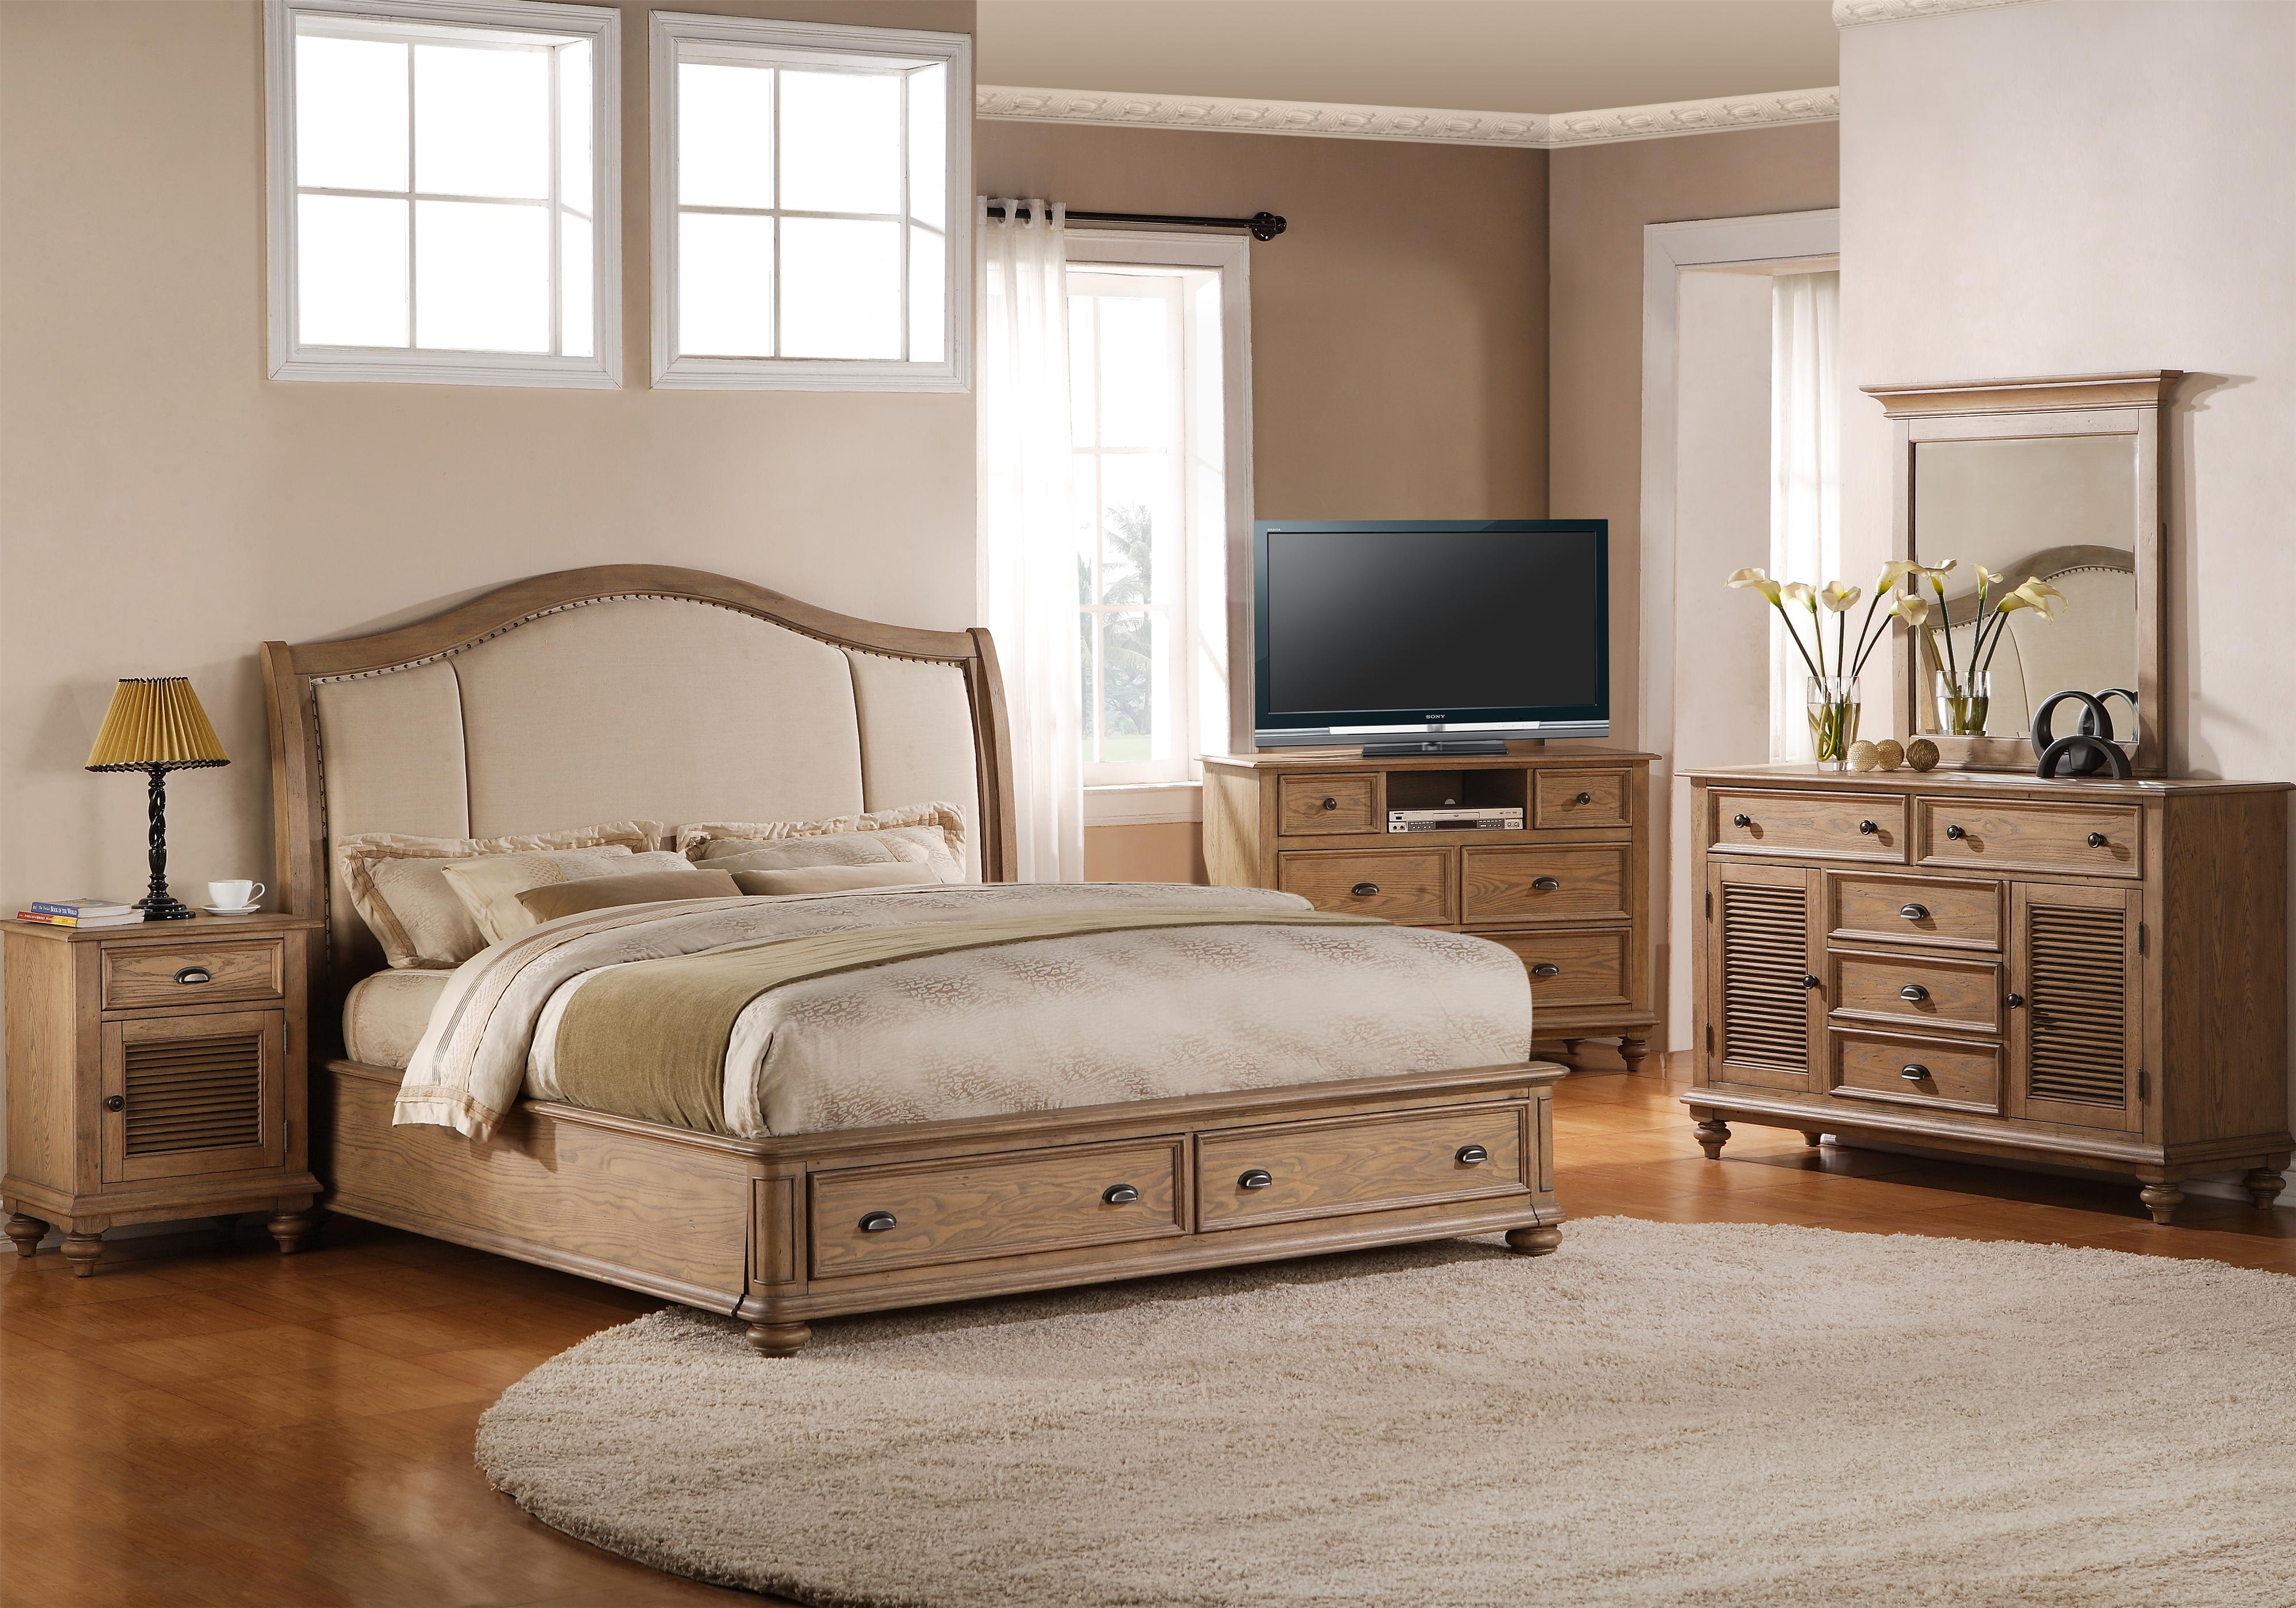 Riverside Furniture Coventry Full/Queen Bedroom Group - Item Number: 32400 F Q Bedroom Group 13